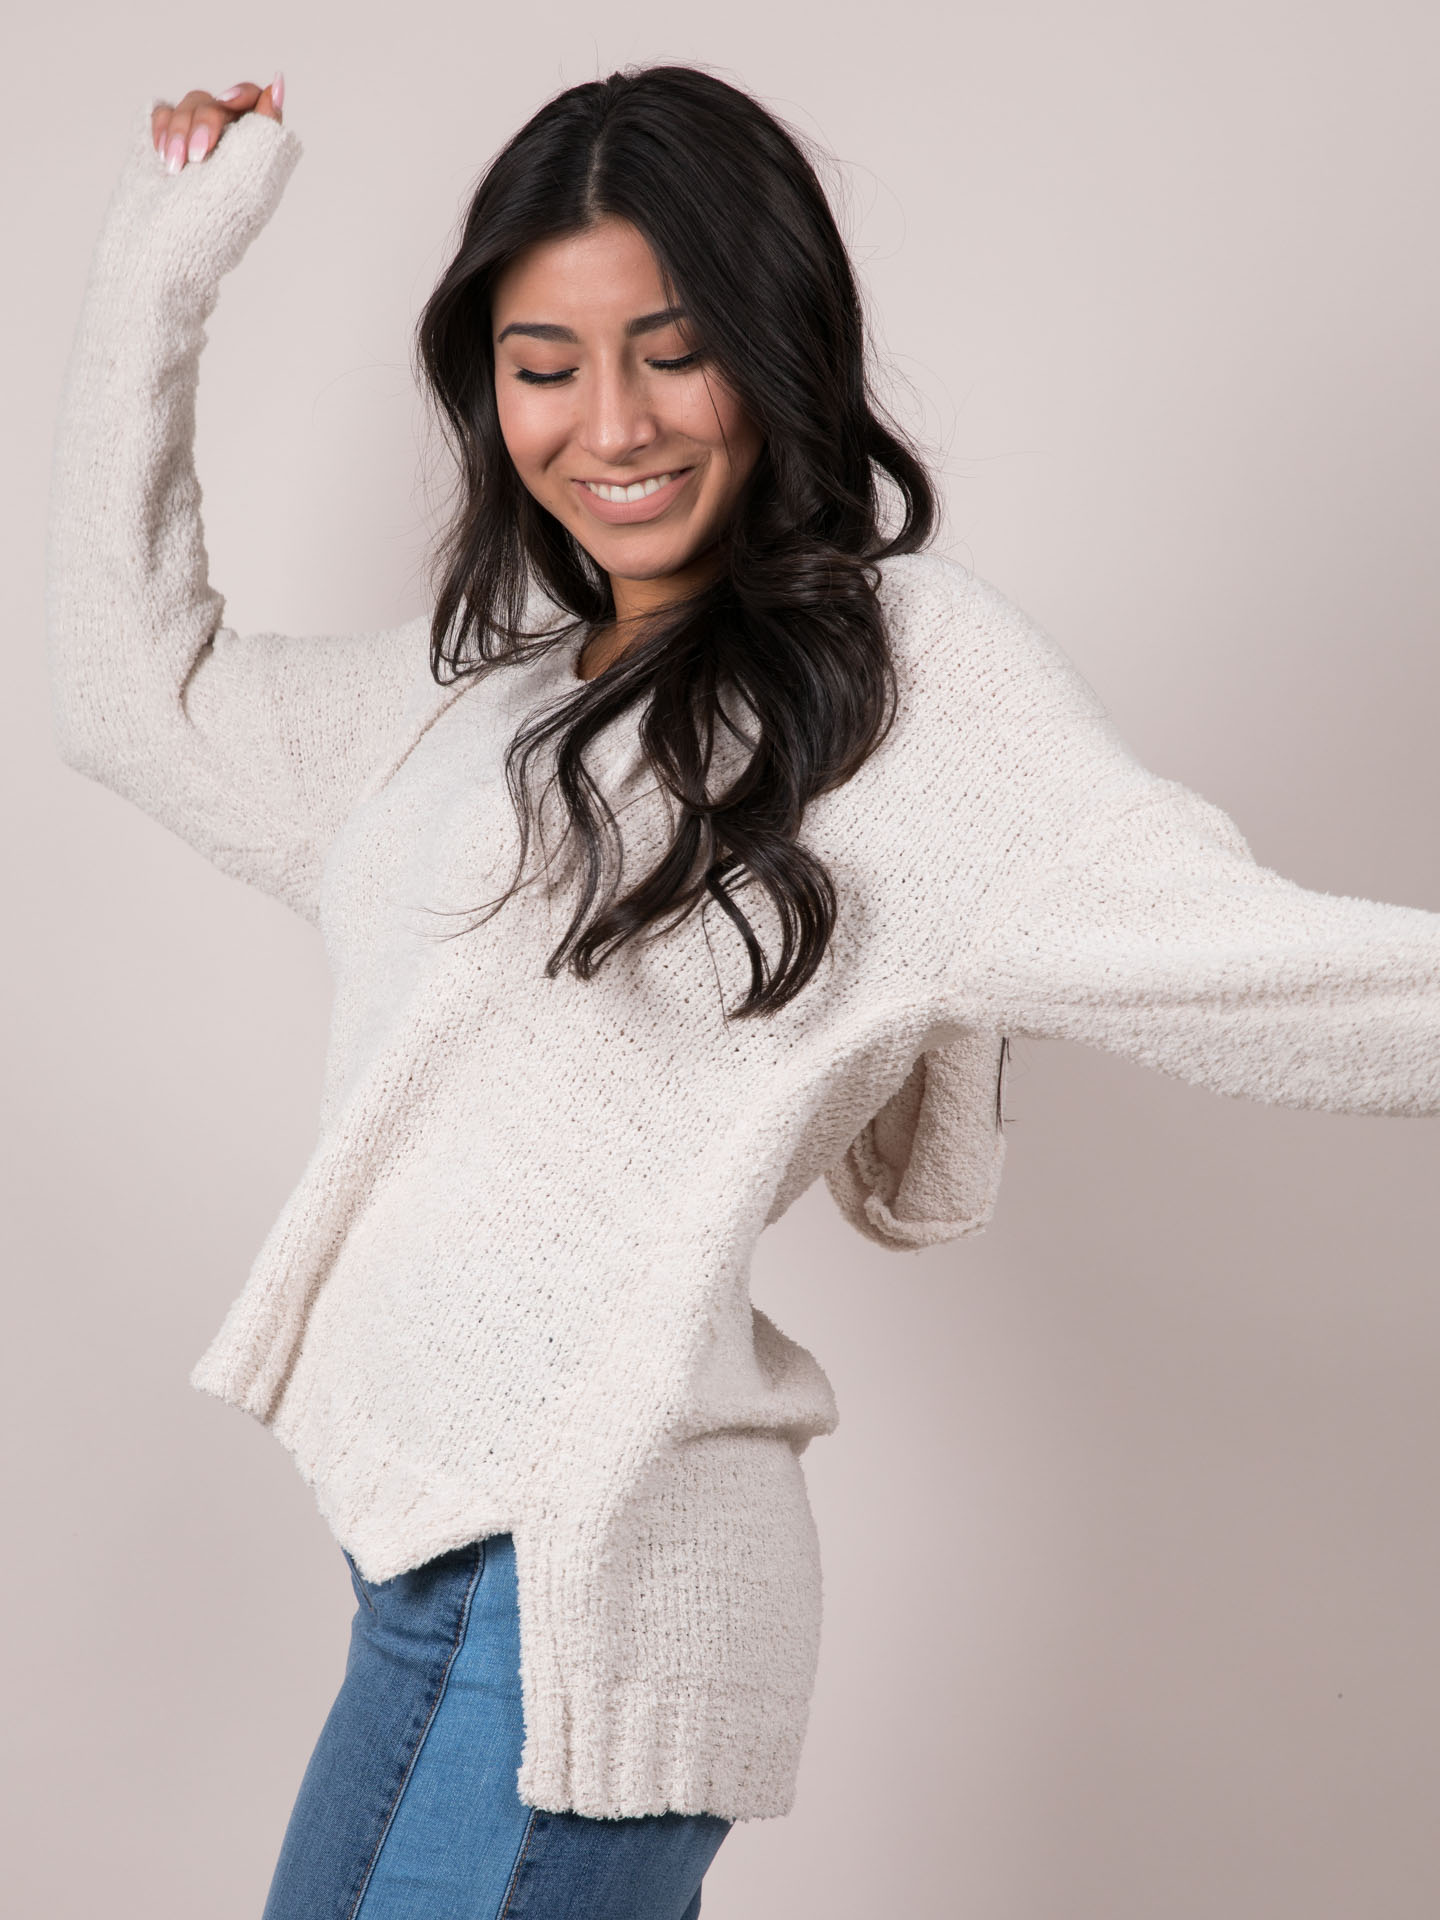 Whitney Hoodie Oversized Knitted Sweater